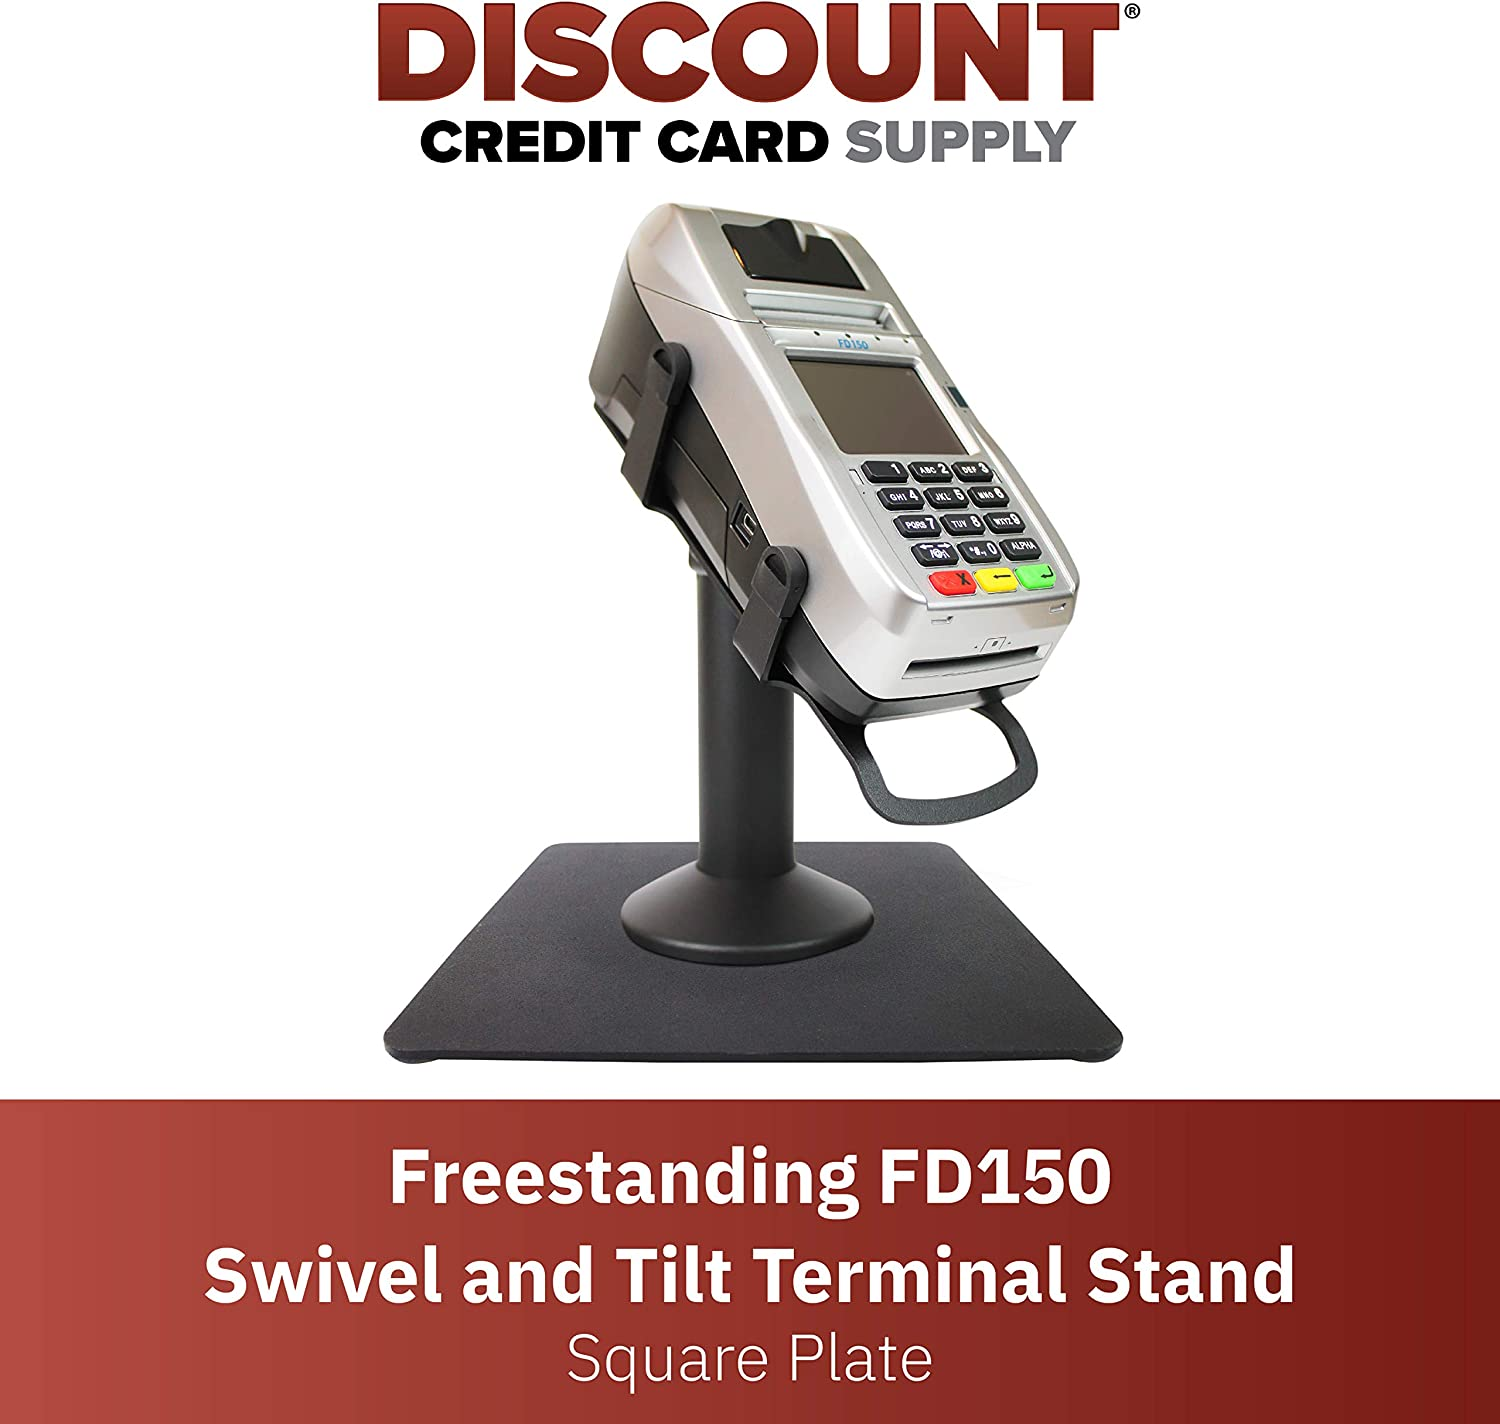 DCCStands Freestanding Swivel and Tilt First Data FD150 Terminal Stand with Square Plate, Black